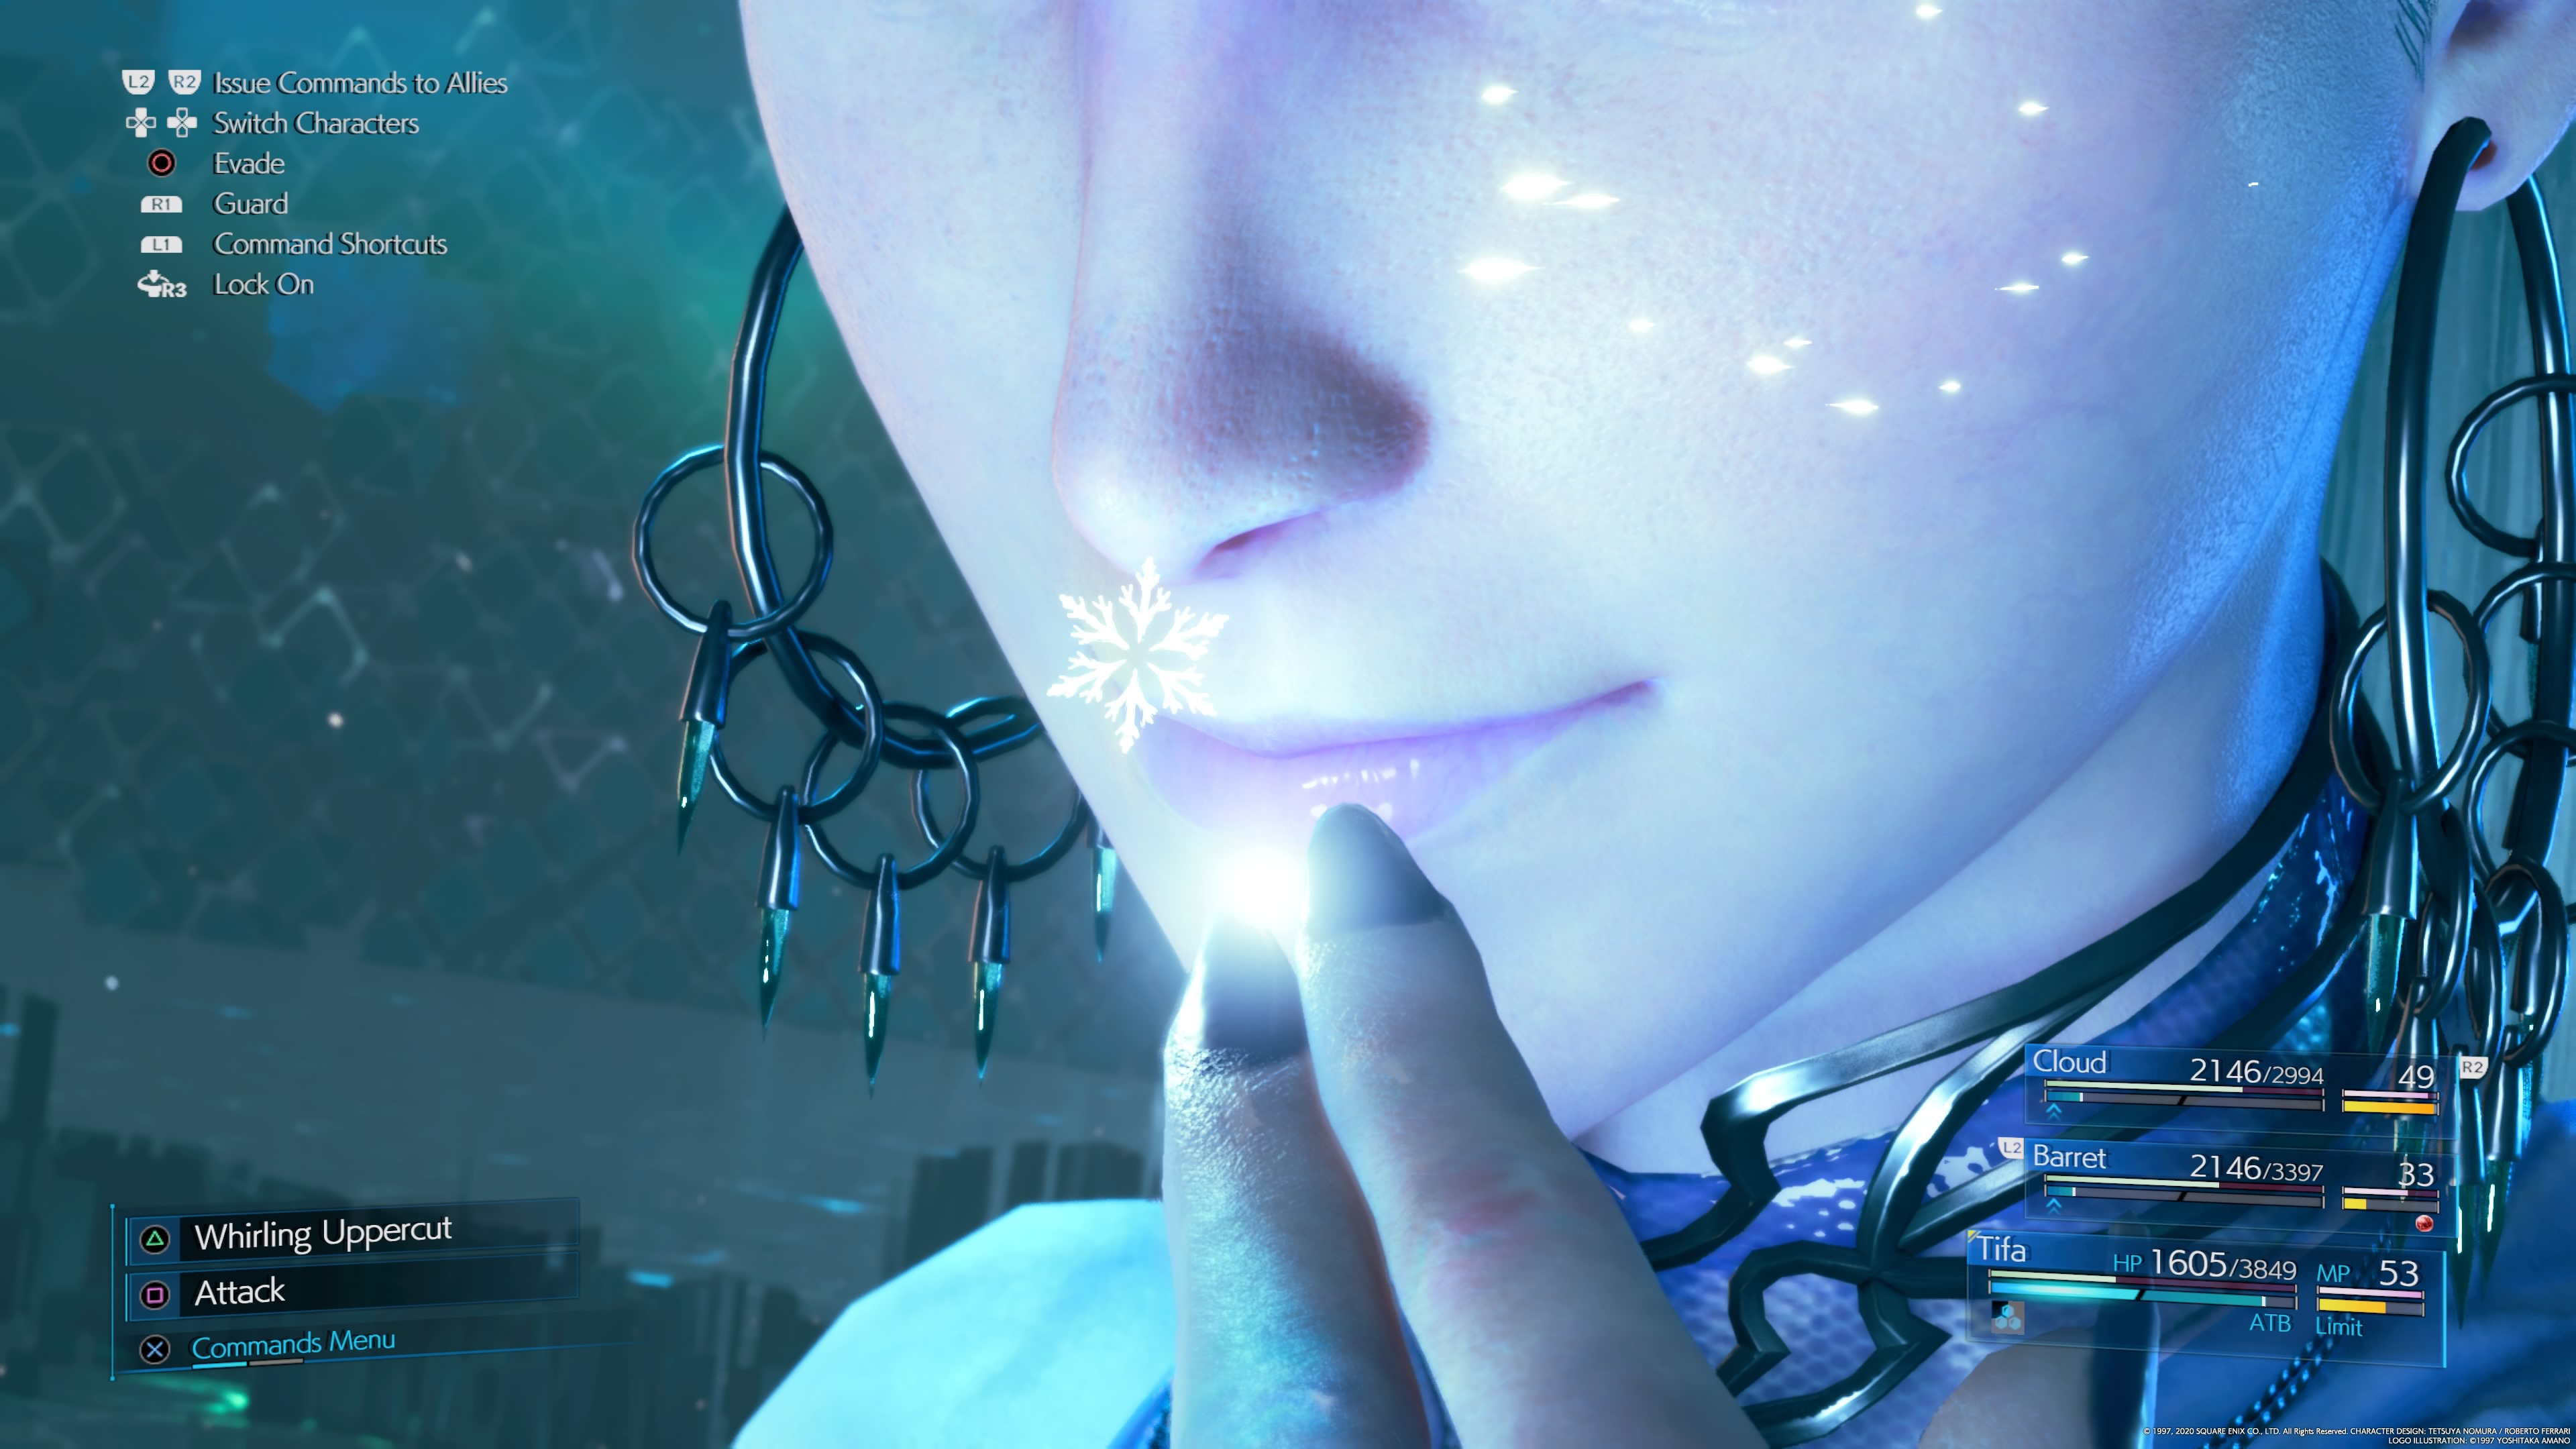 A close up of Shiva from the Final Fantasy 7 Remake